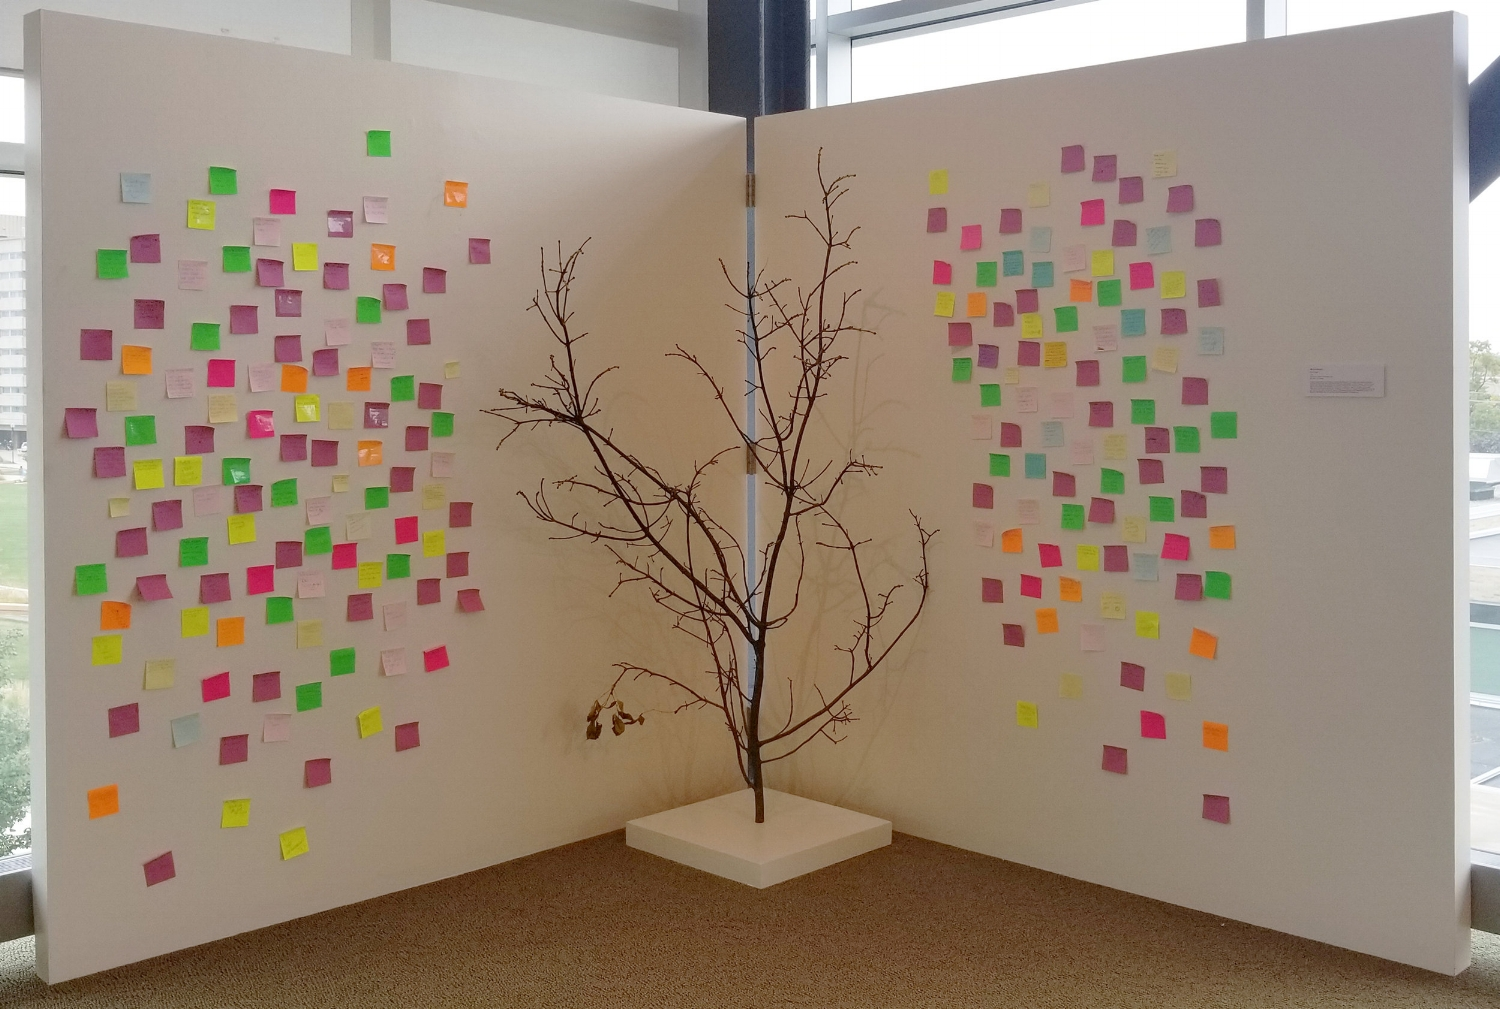 """New Growth   2017 tree branch, leaves, pedestal, Post-it notes, pen 16 1/4"""" x 14 1/8"""""""